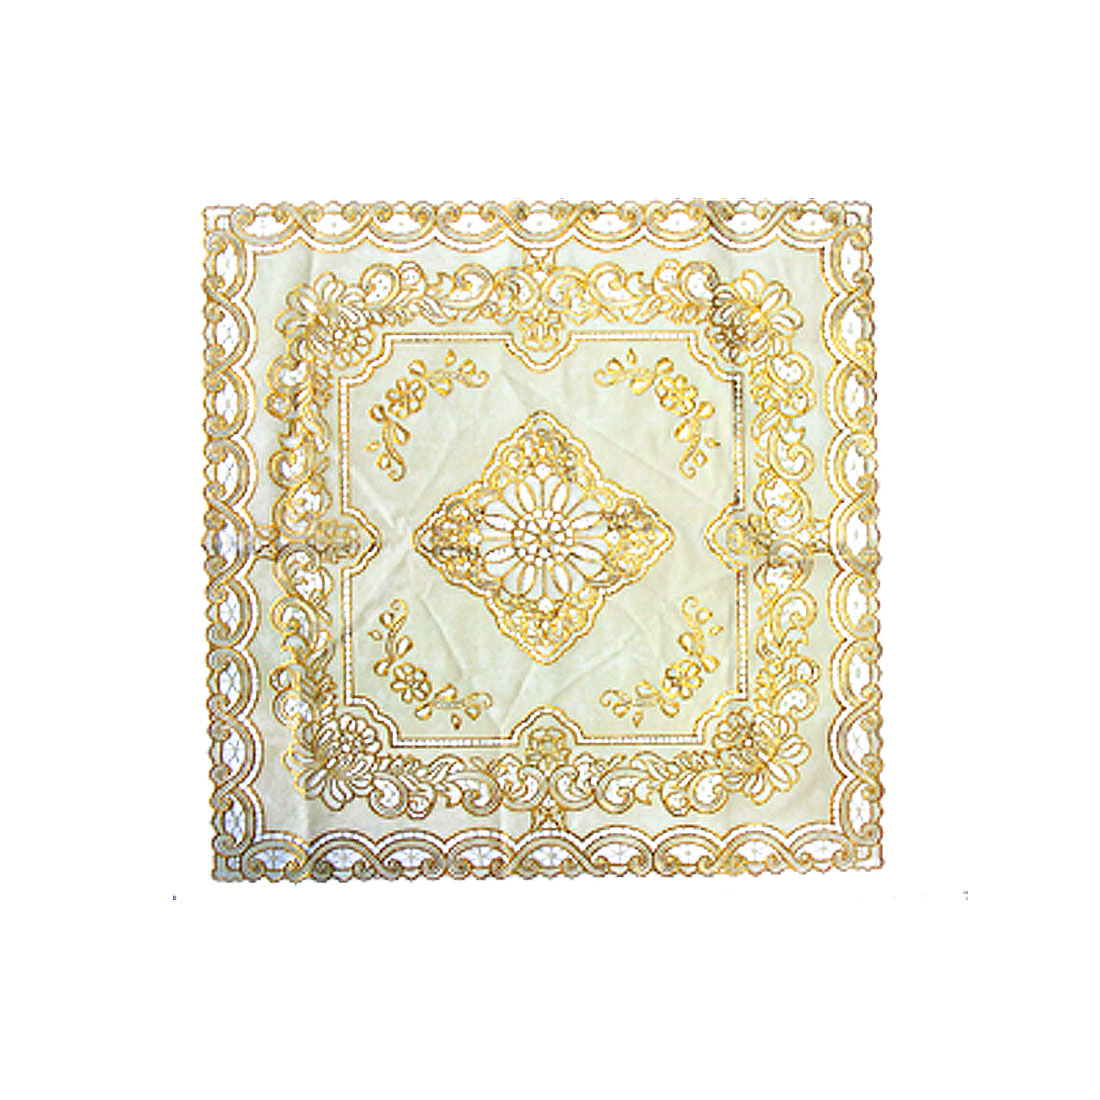 Chic Doily Runner Cover Plastic Tablecloth with Golden Embroidered